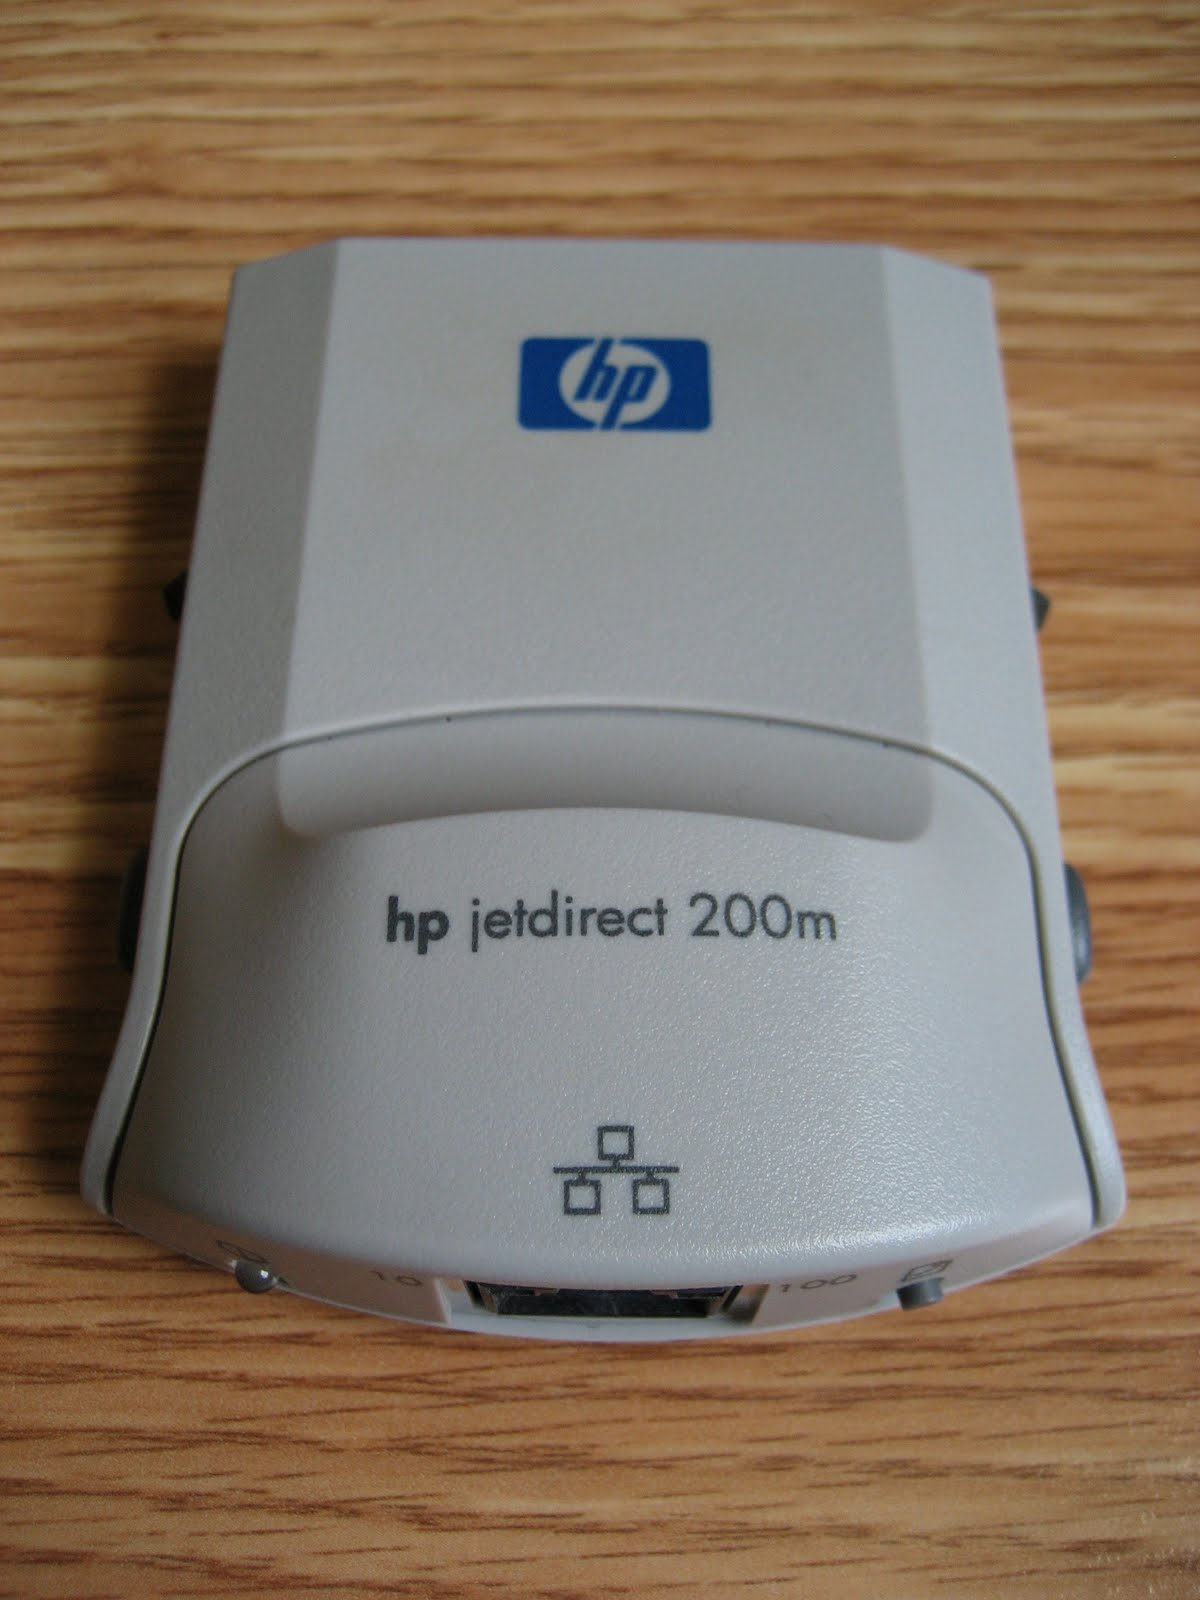 JETDIRECT 200M DRIVER DOWNLOAD